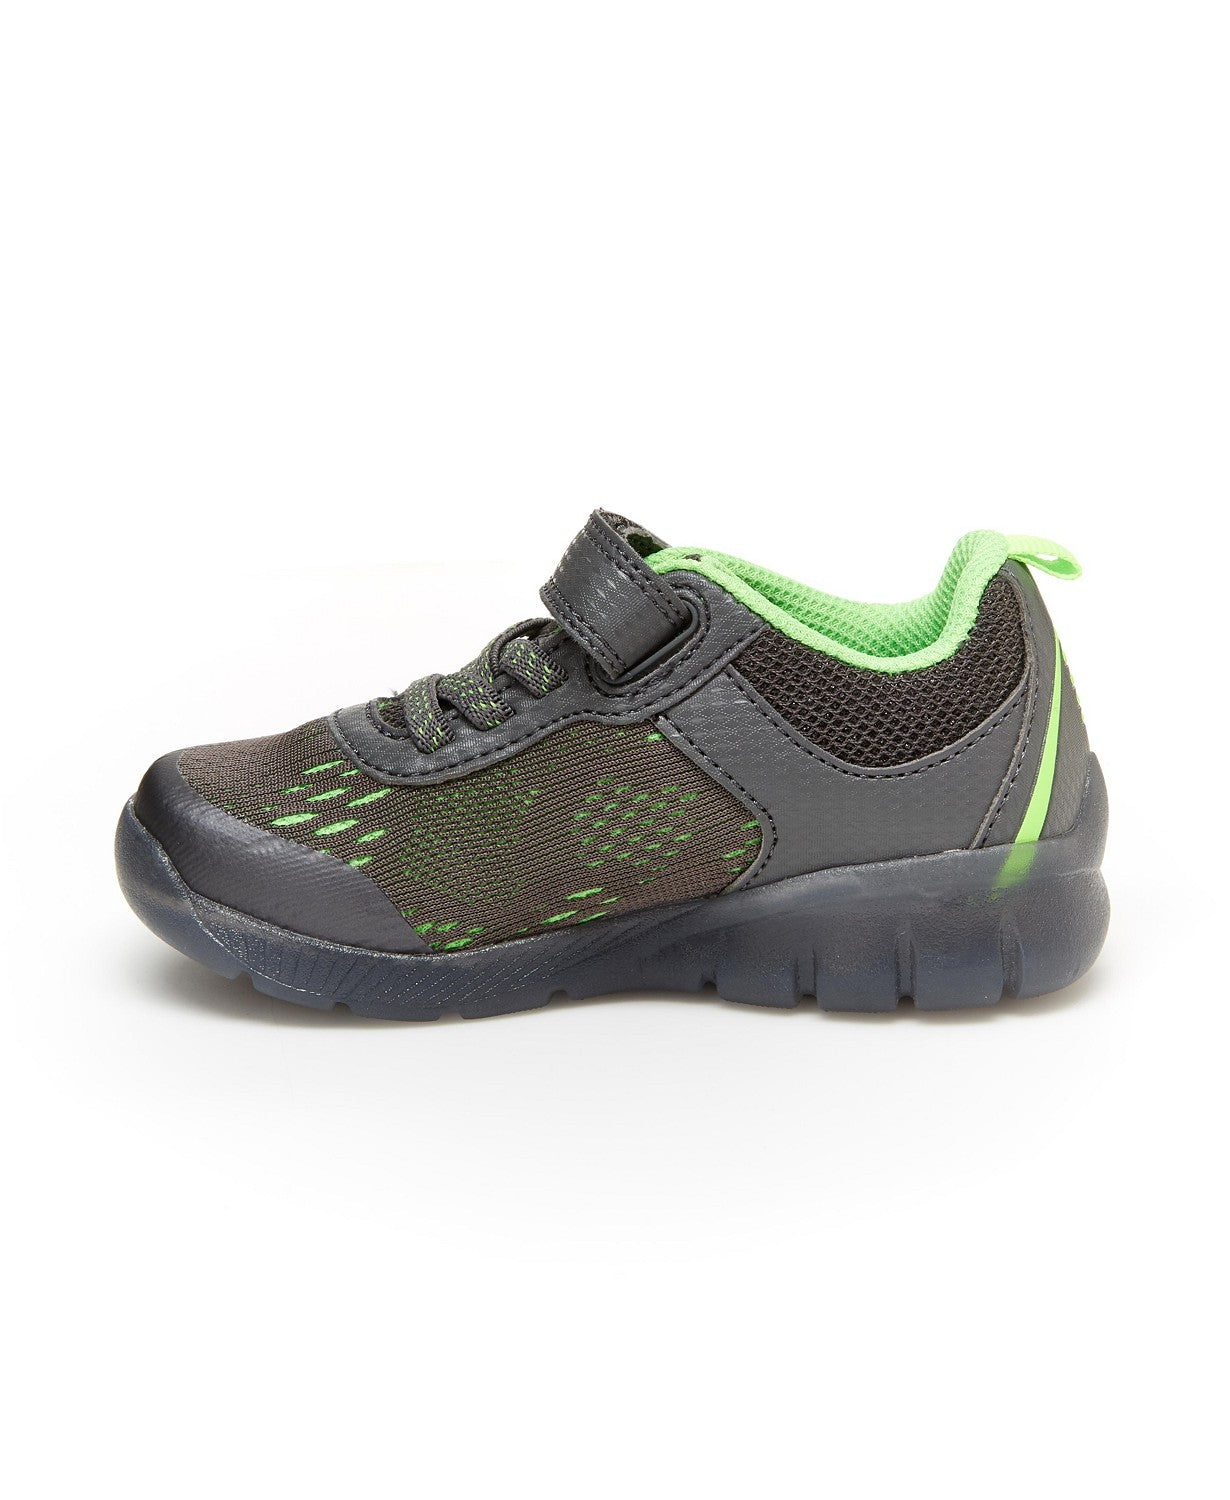 Stride Rite Made2Play Lighted Neo Sneaker - Grey/Green